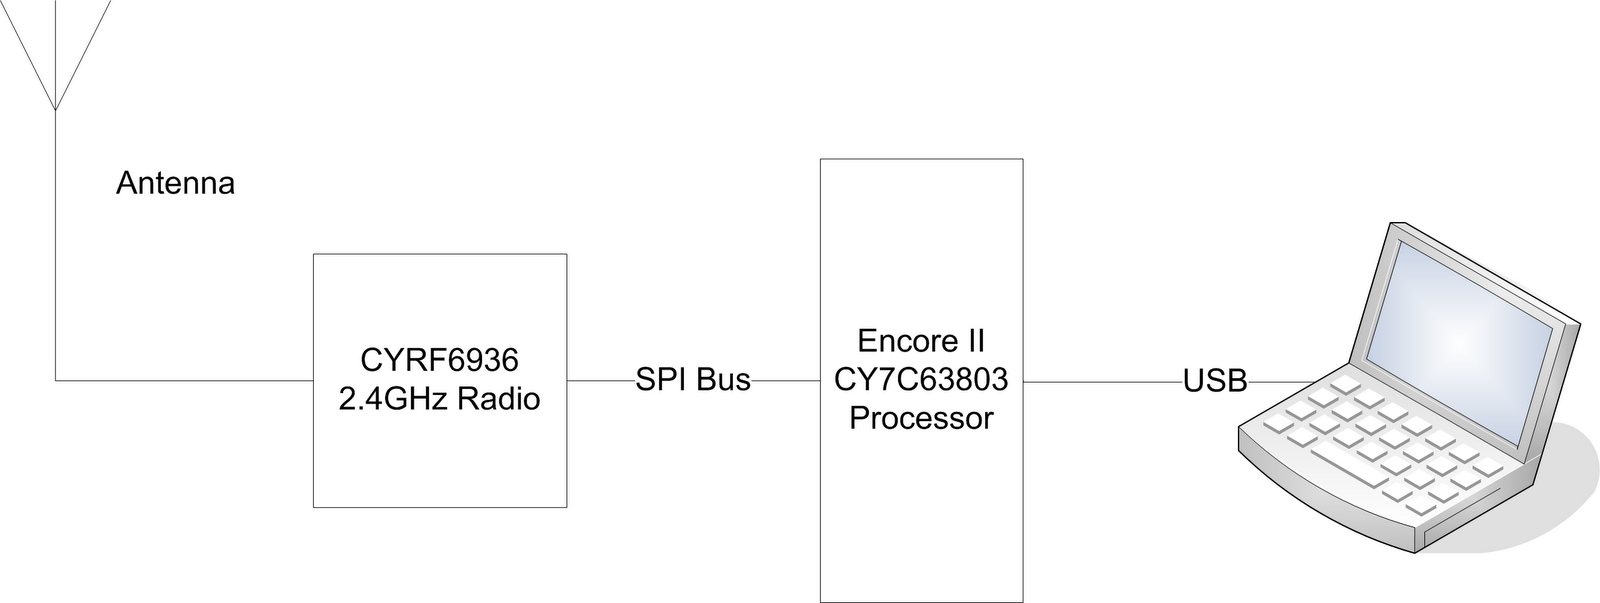 Hacking Wireless Presenters With An Arduino And Mouse Schematic A Rough Block Diagram Of The Presenter Dongle